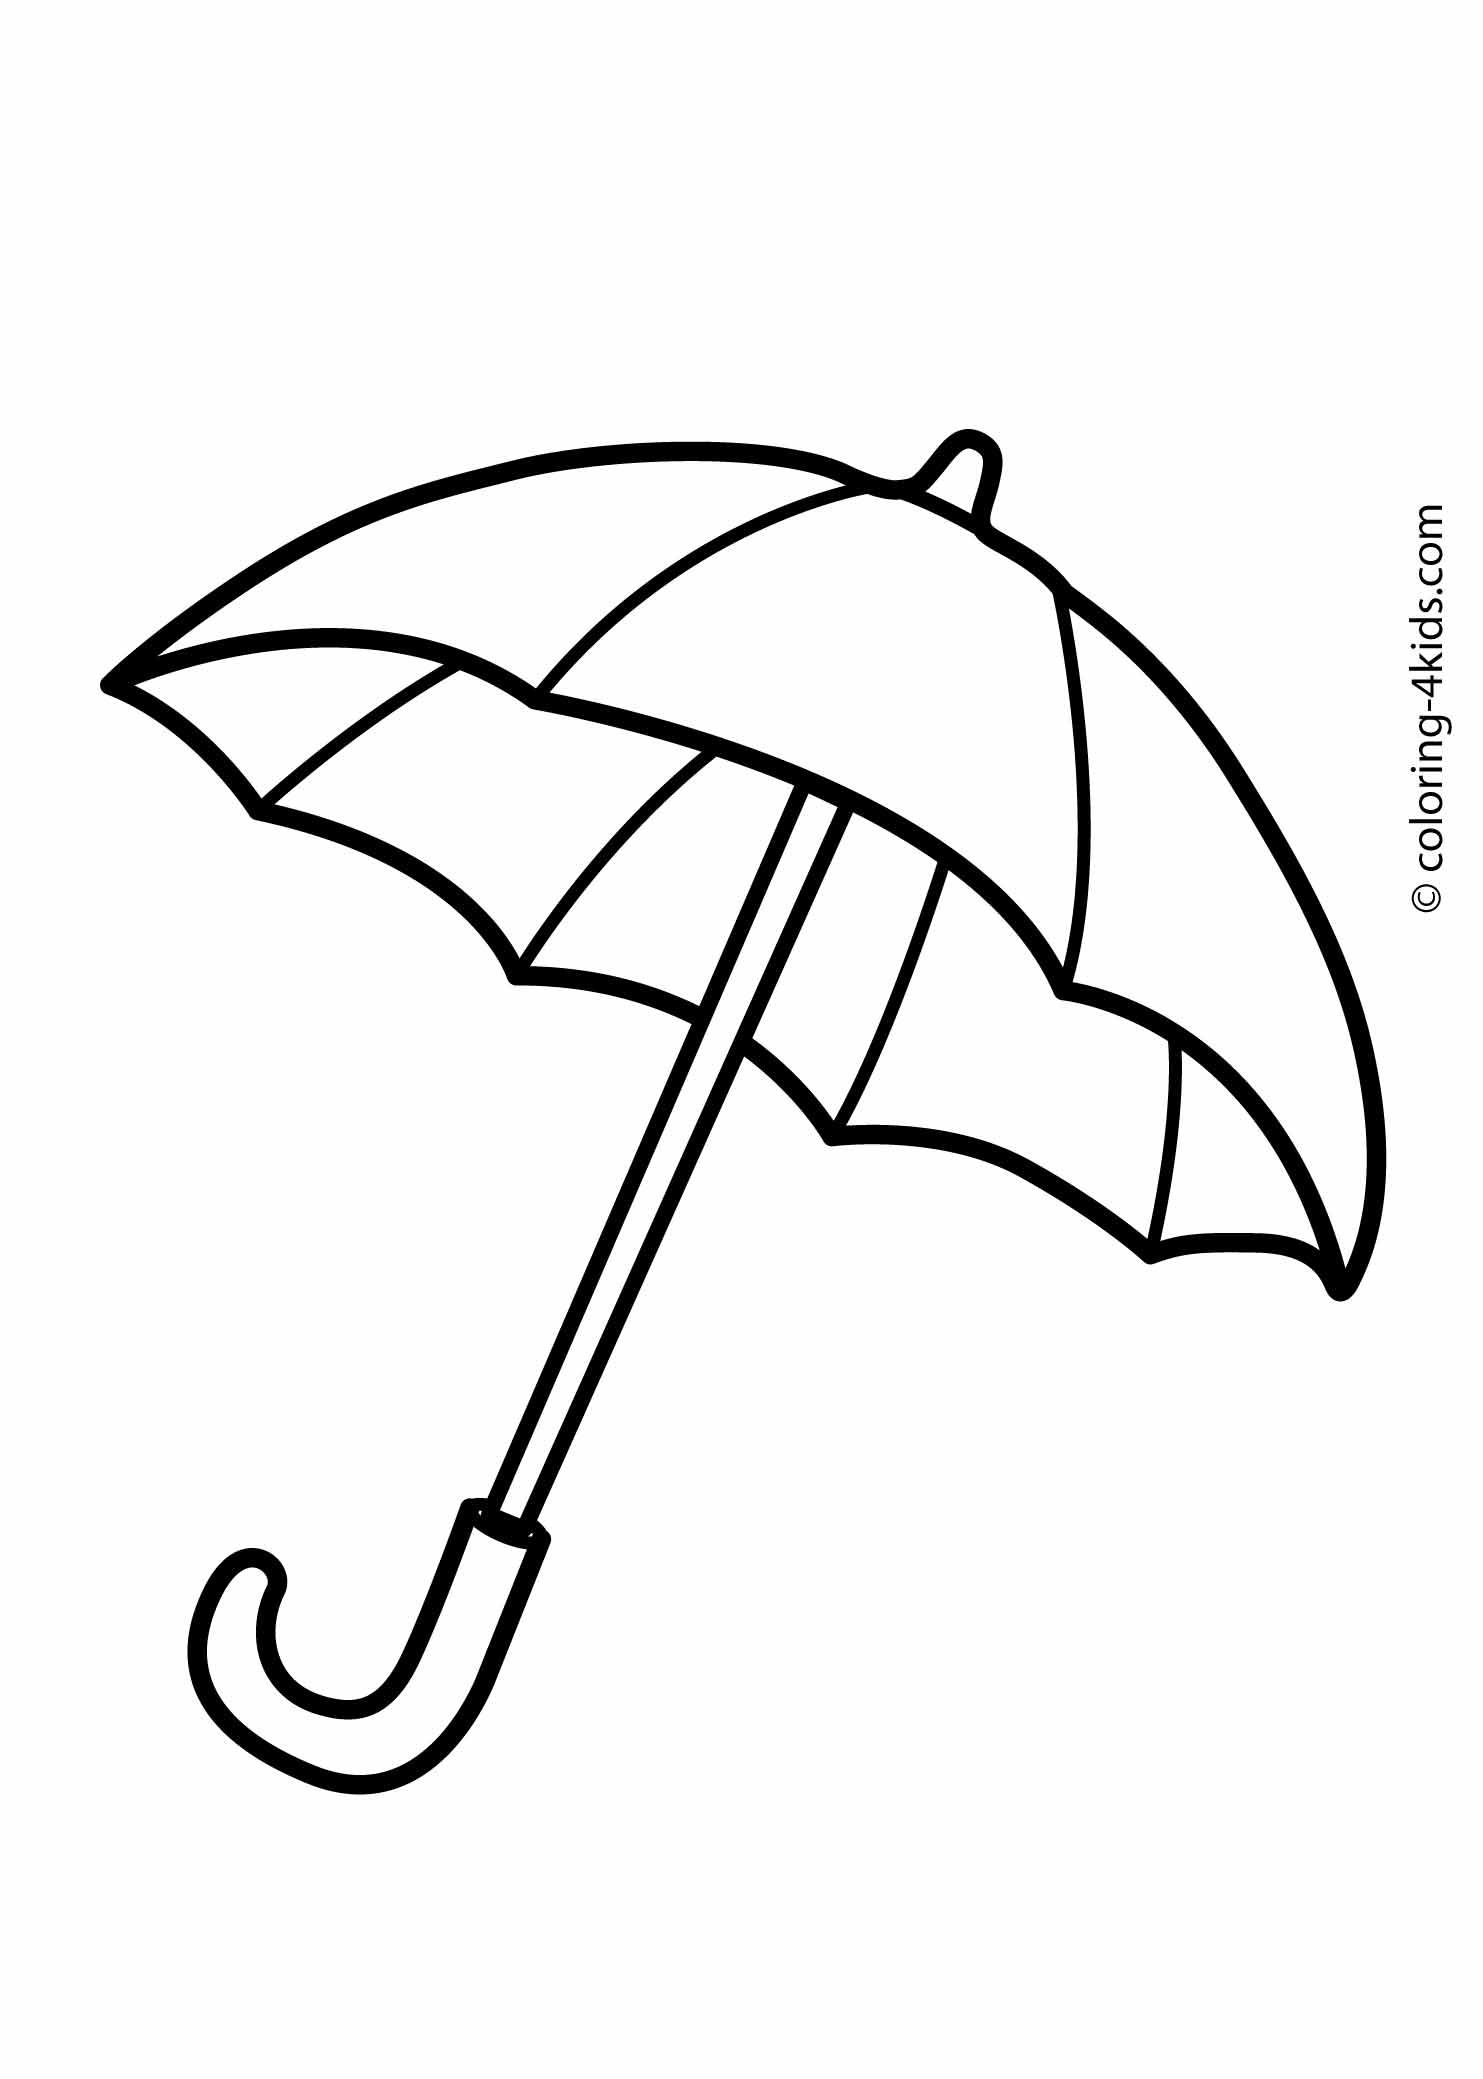 Umbrella Coloring Pages For Kids Printable Drawing Umbrella Coloring Page Spring Coloring Pages Umbrella Drawing